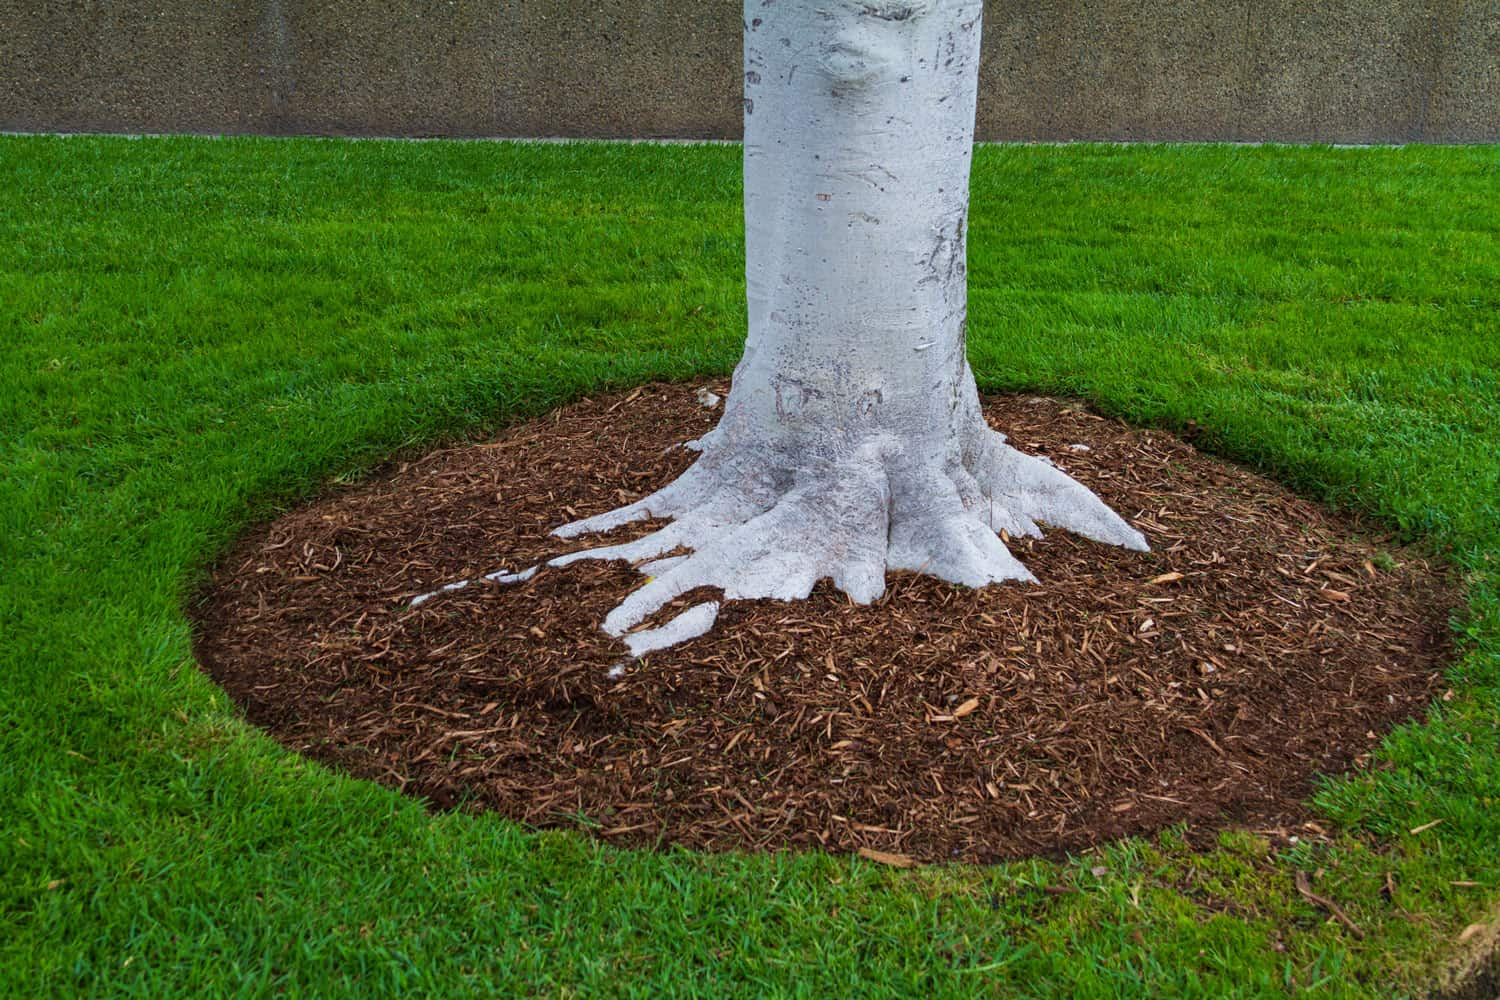 Tree trunk base with mulch and green grass